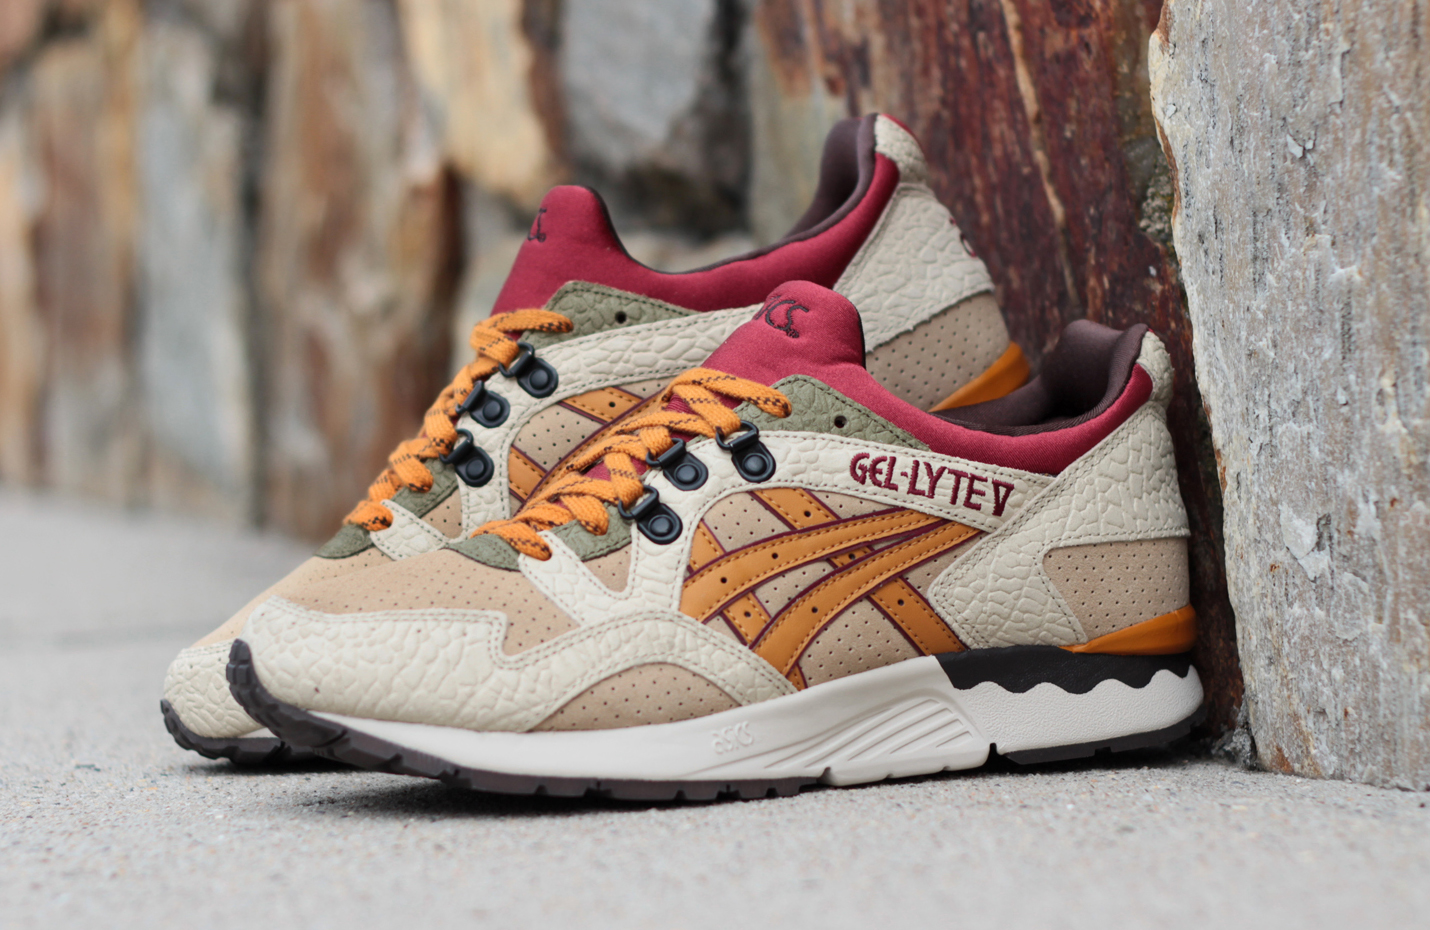 Royaume-Uni disponibilité ccf1e 2229f Asics Going Back to Work On Its Retro Runners | Sole Collector